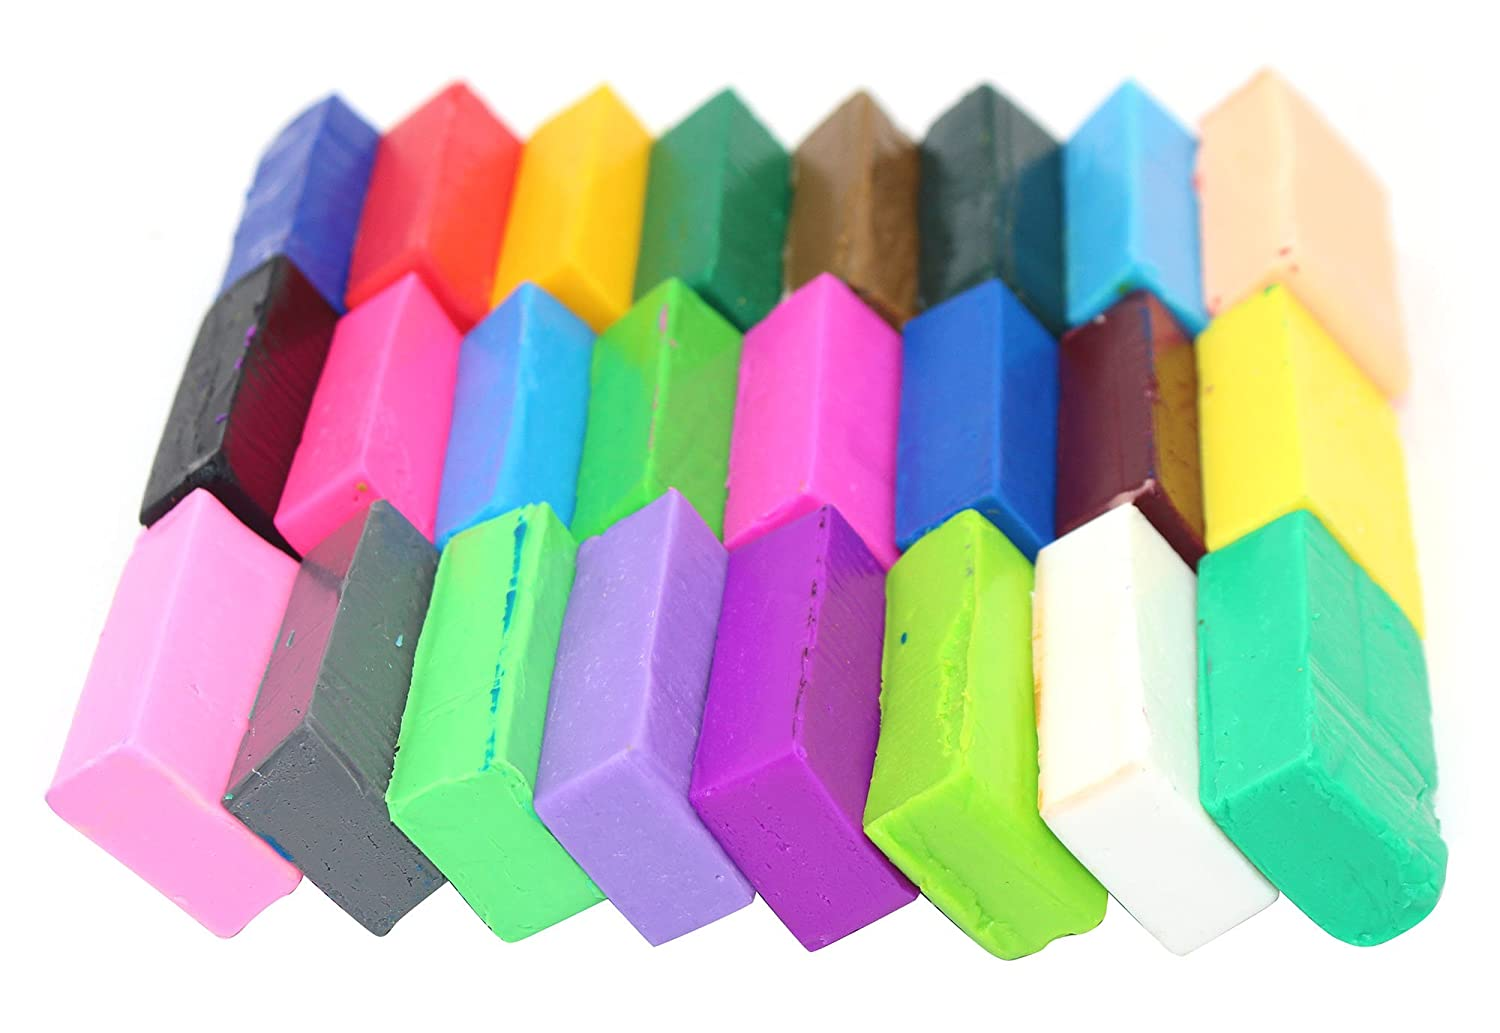 24 Blocks DIY Colourful Fimo Polymer Clay Oven Baked Modelling Moulding for Kids Craft,0.3kg B075WWXY9G